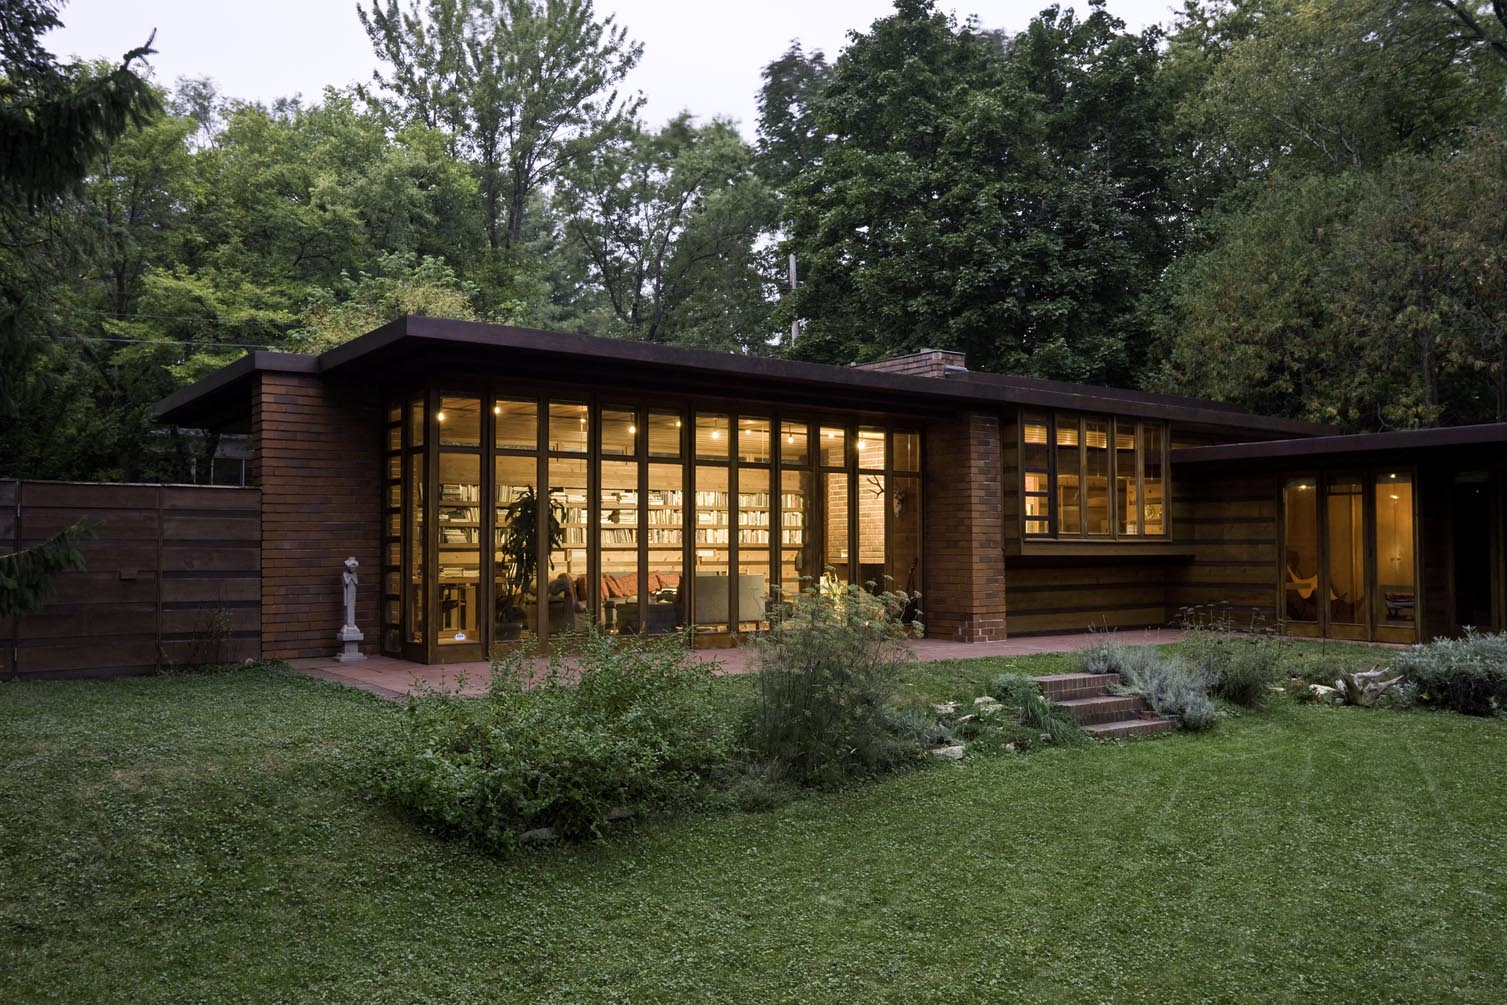 photo credit: http://0.tqn.com/d/architecture/1/0/_/t/JacobsHouse_exterior.jpg